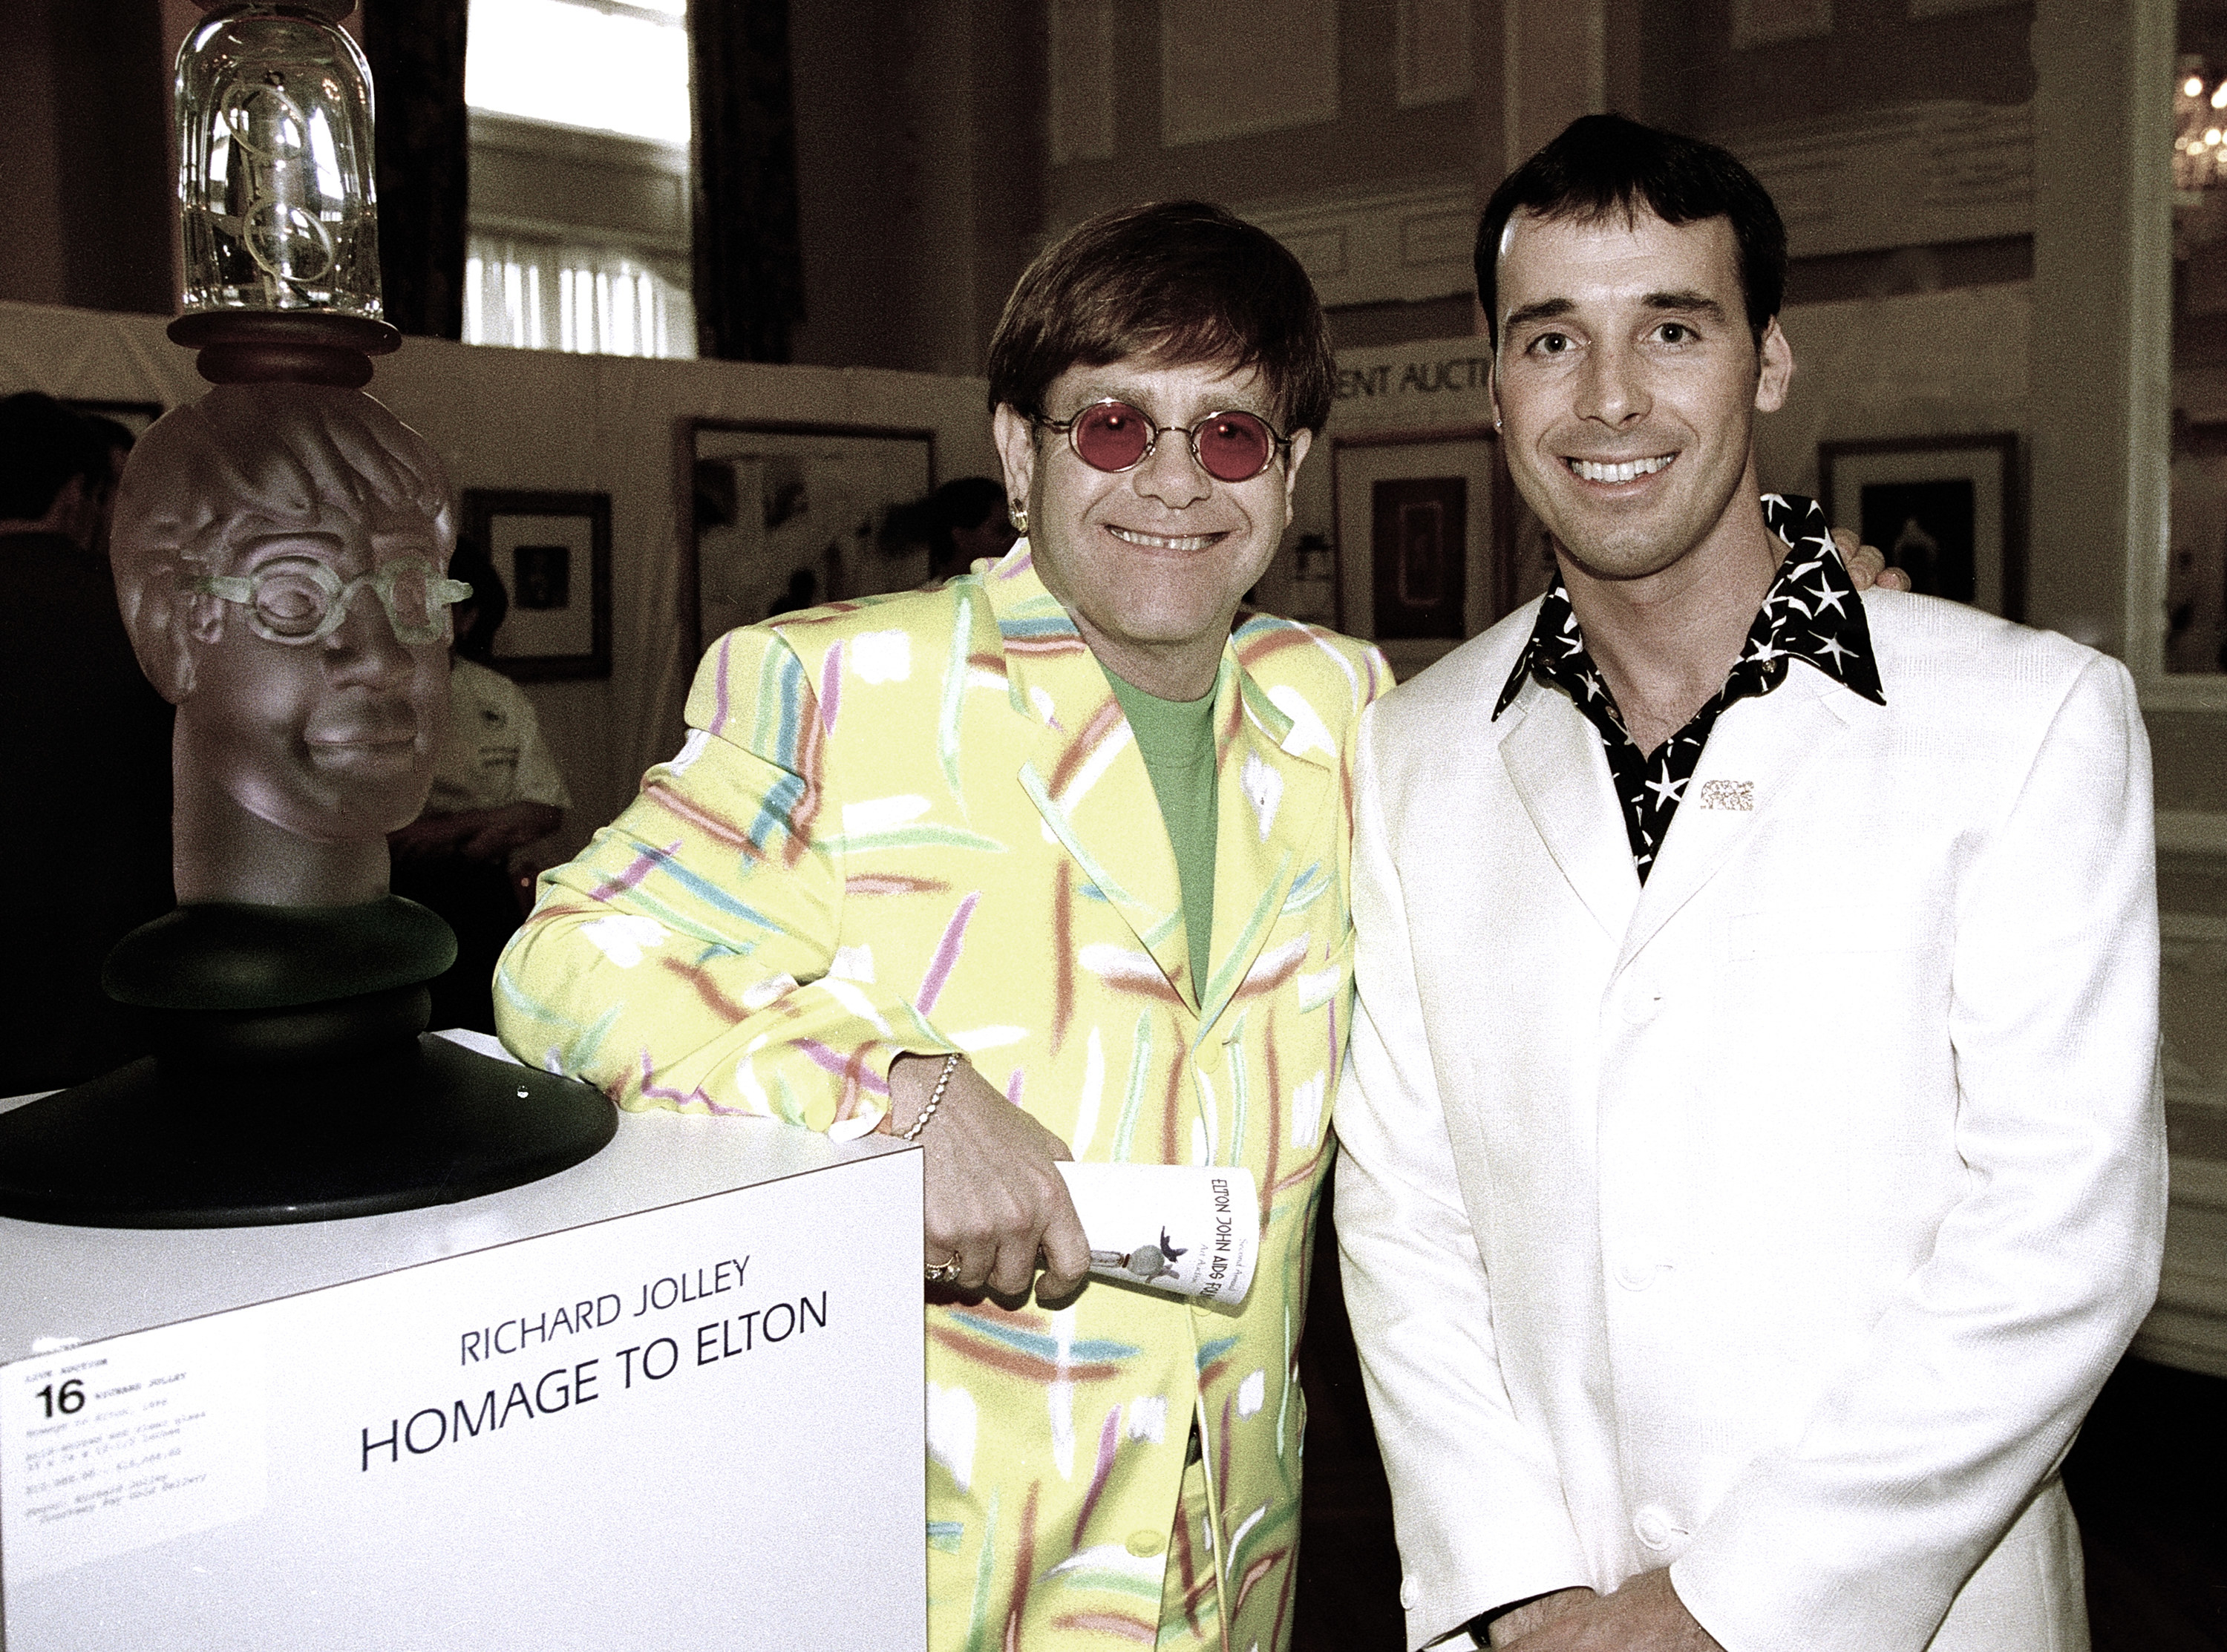 A younger Elton John and David Furnish smiling for a photo next to an art piece dedicated to Elton